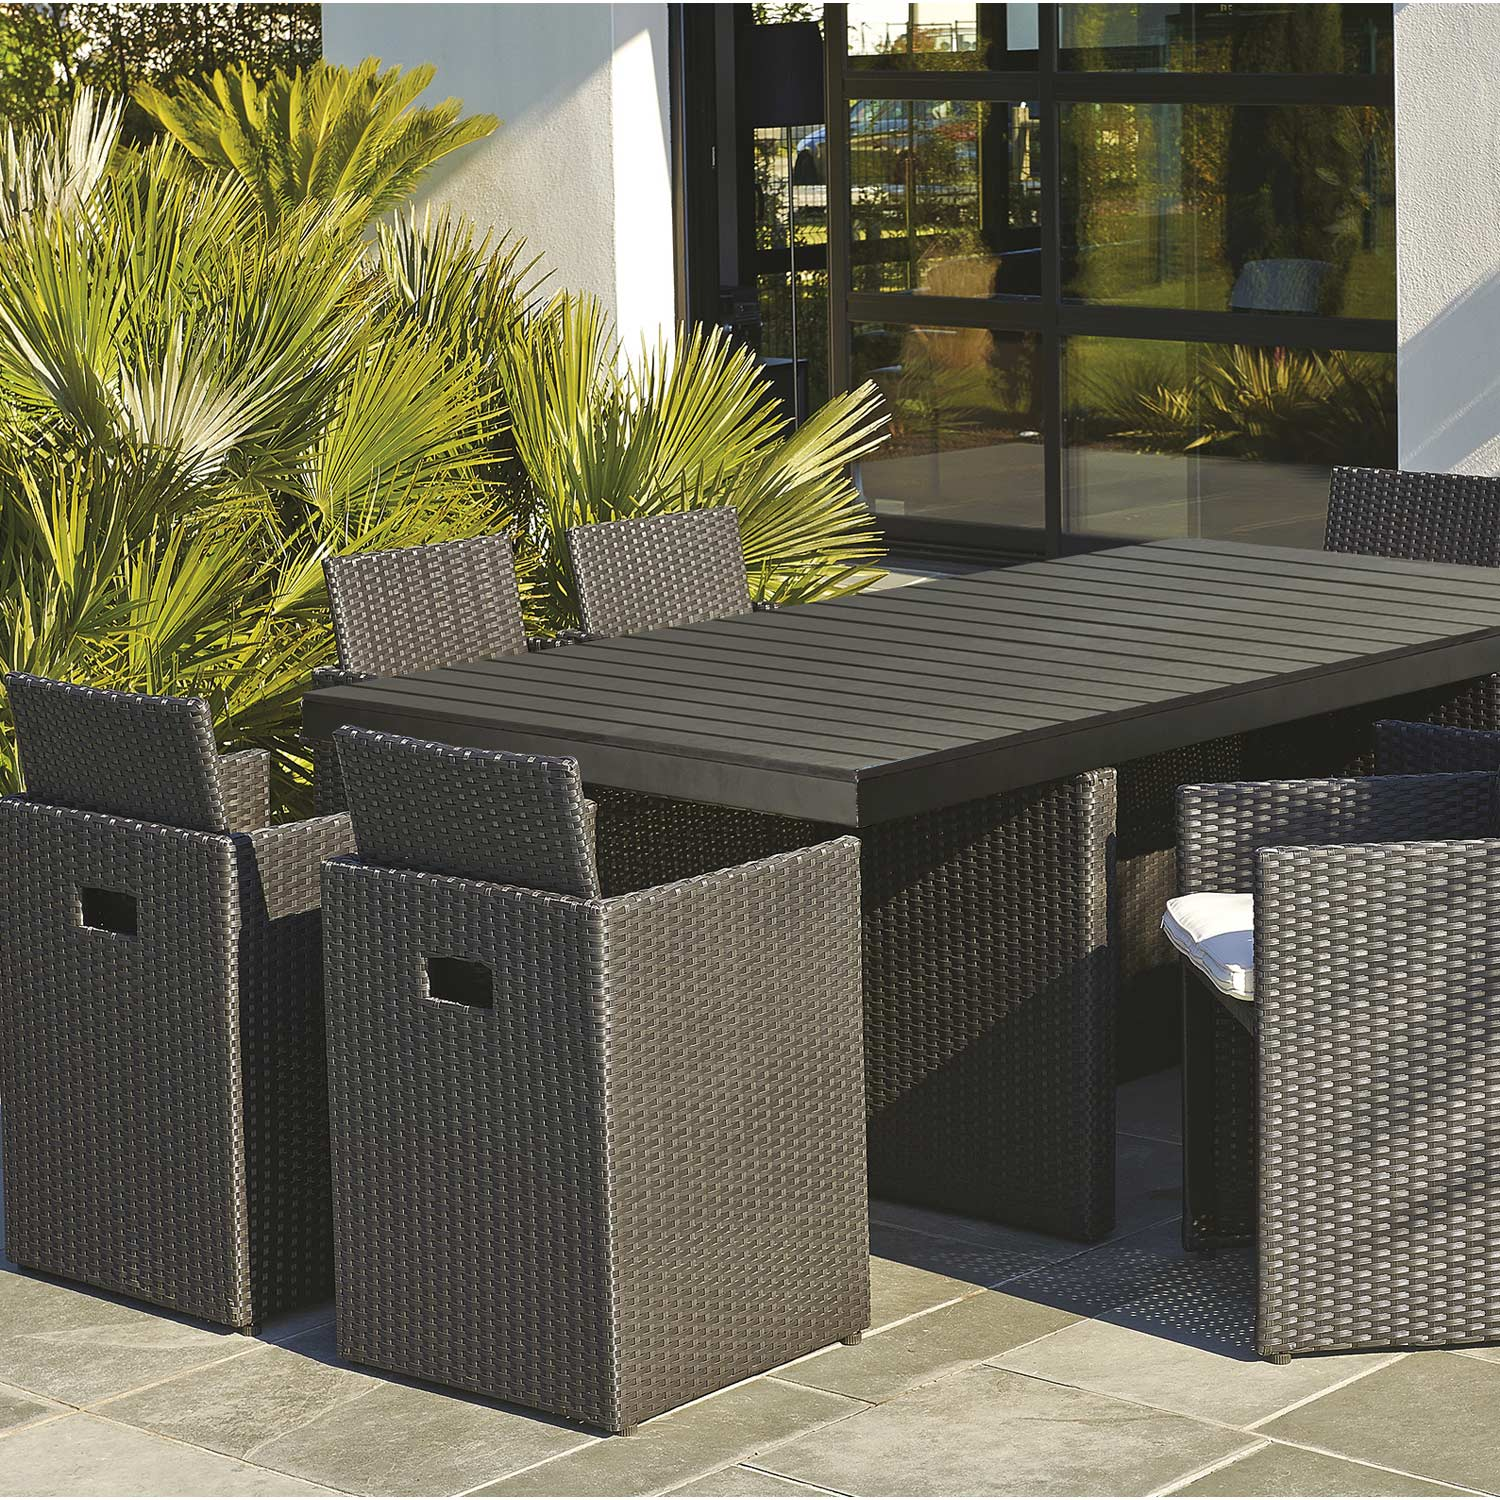 salon de jardin encastrable r sine tress e noir 1 table 8 fauteuils leroy merlin. Black Bedroom Furniture Sets. Home Design Ideas